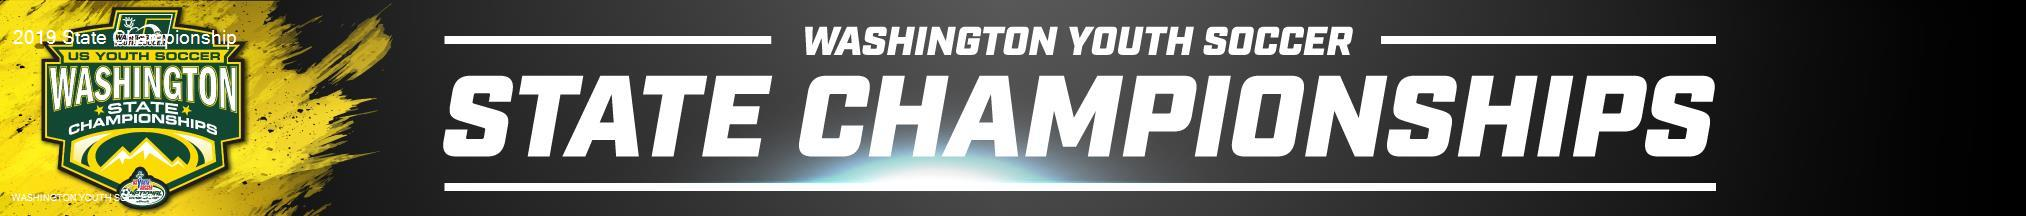 2019 Washington Youth Soccer State Championship banner